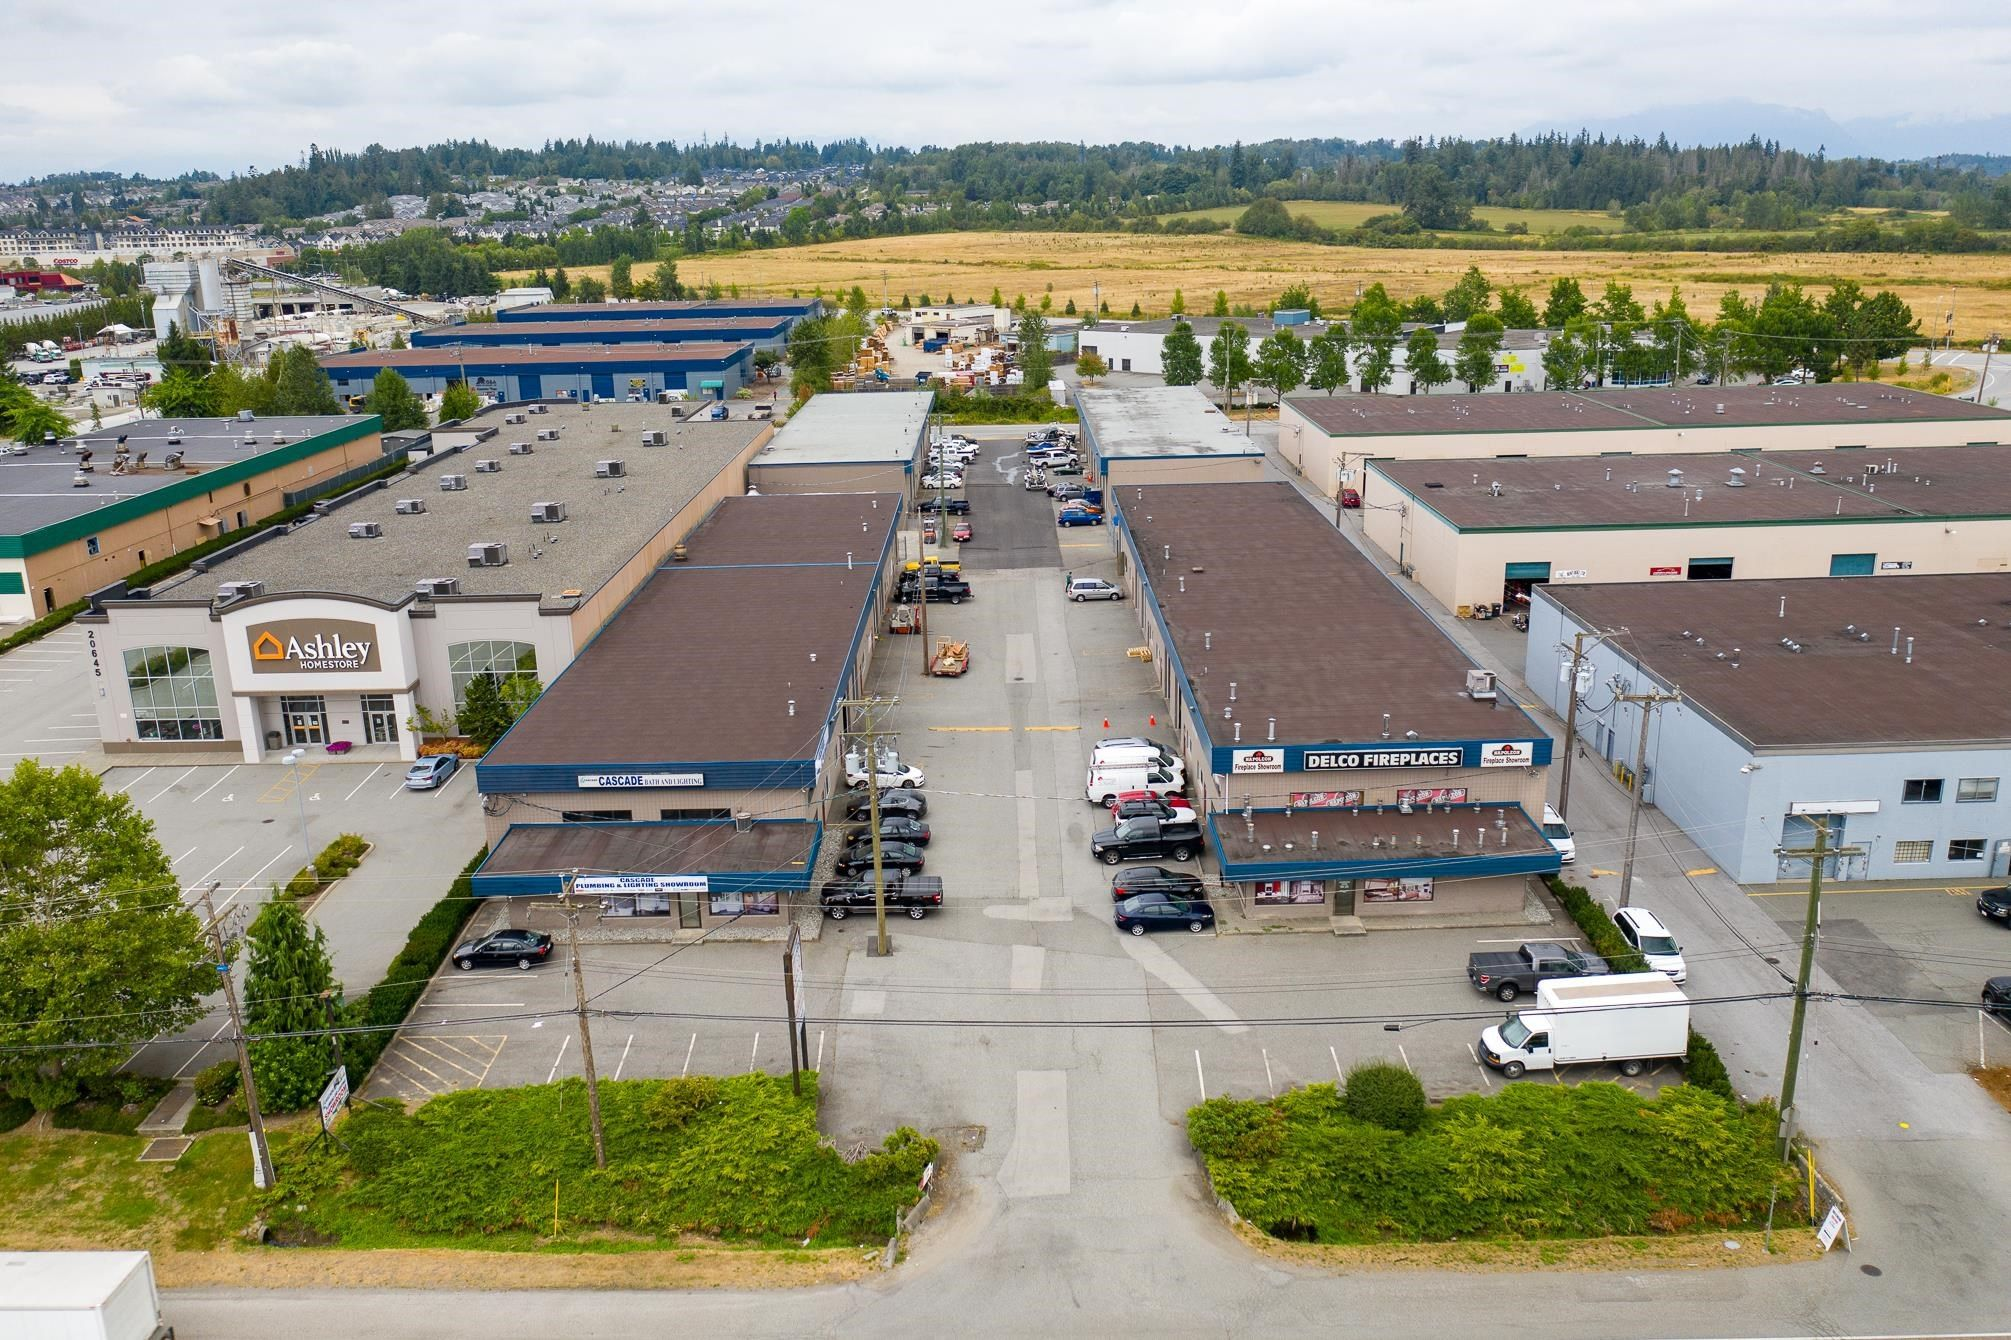 Main Photo: 20667 LANGLEY Bypass in Langley: Langley City Industrial for sale : MLS®# C8039990